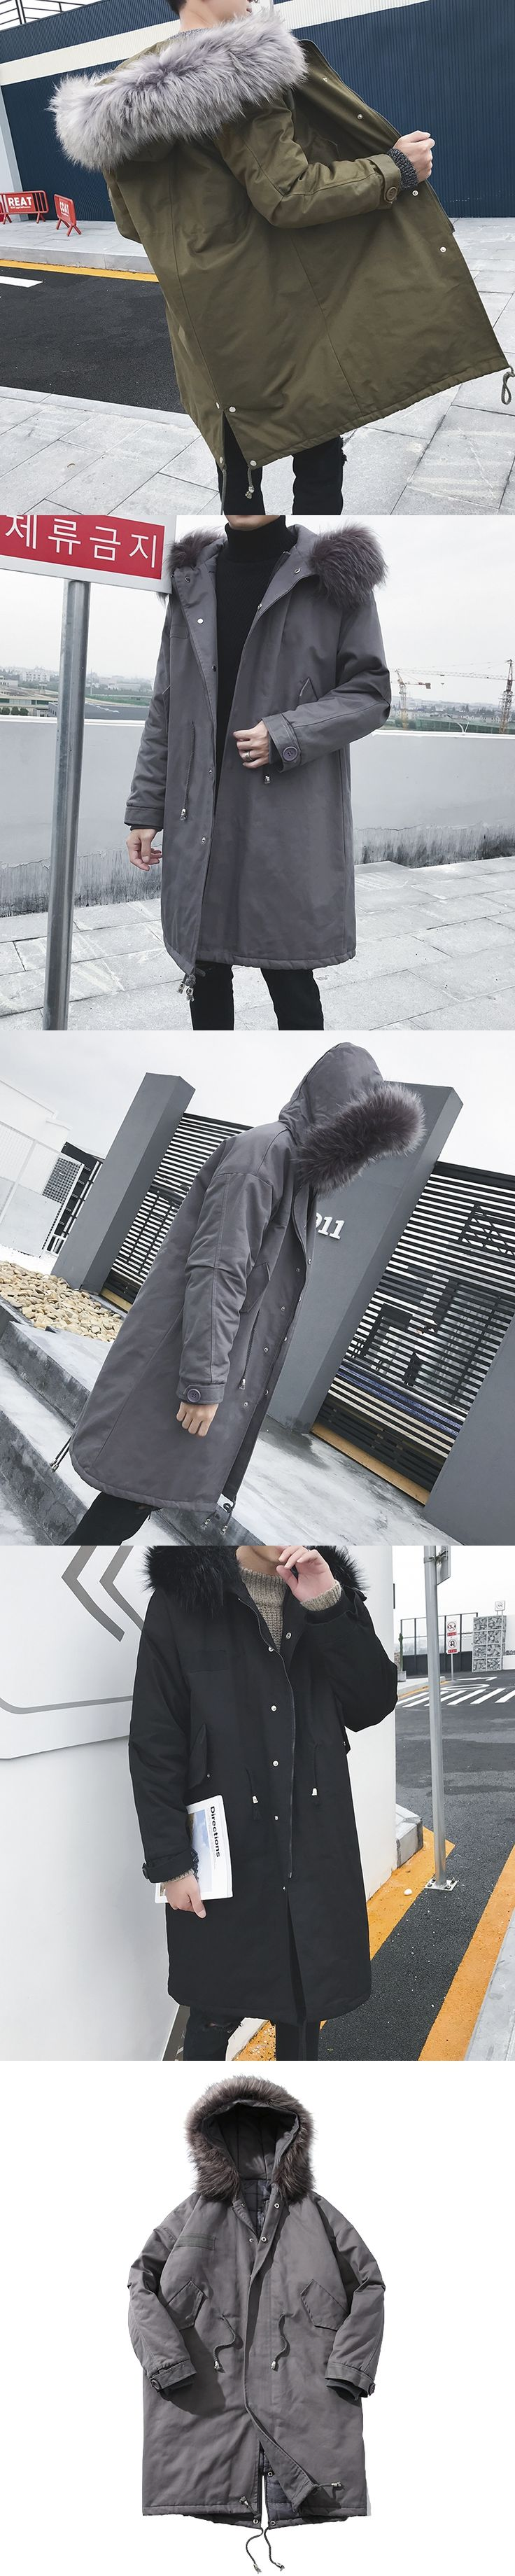 2017 New Winter Men's Fashion Fur Cap Long Windbreaker Thicken Cotton-padded Clothes Loose In Warm Snow Jackets Coats M-3XL